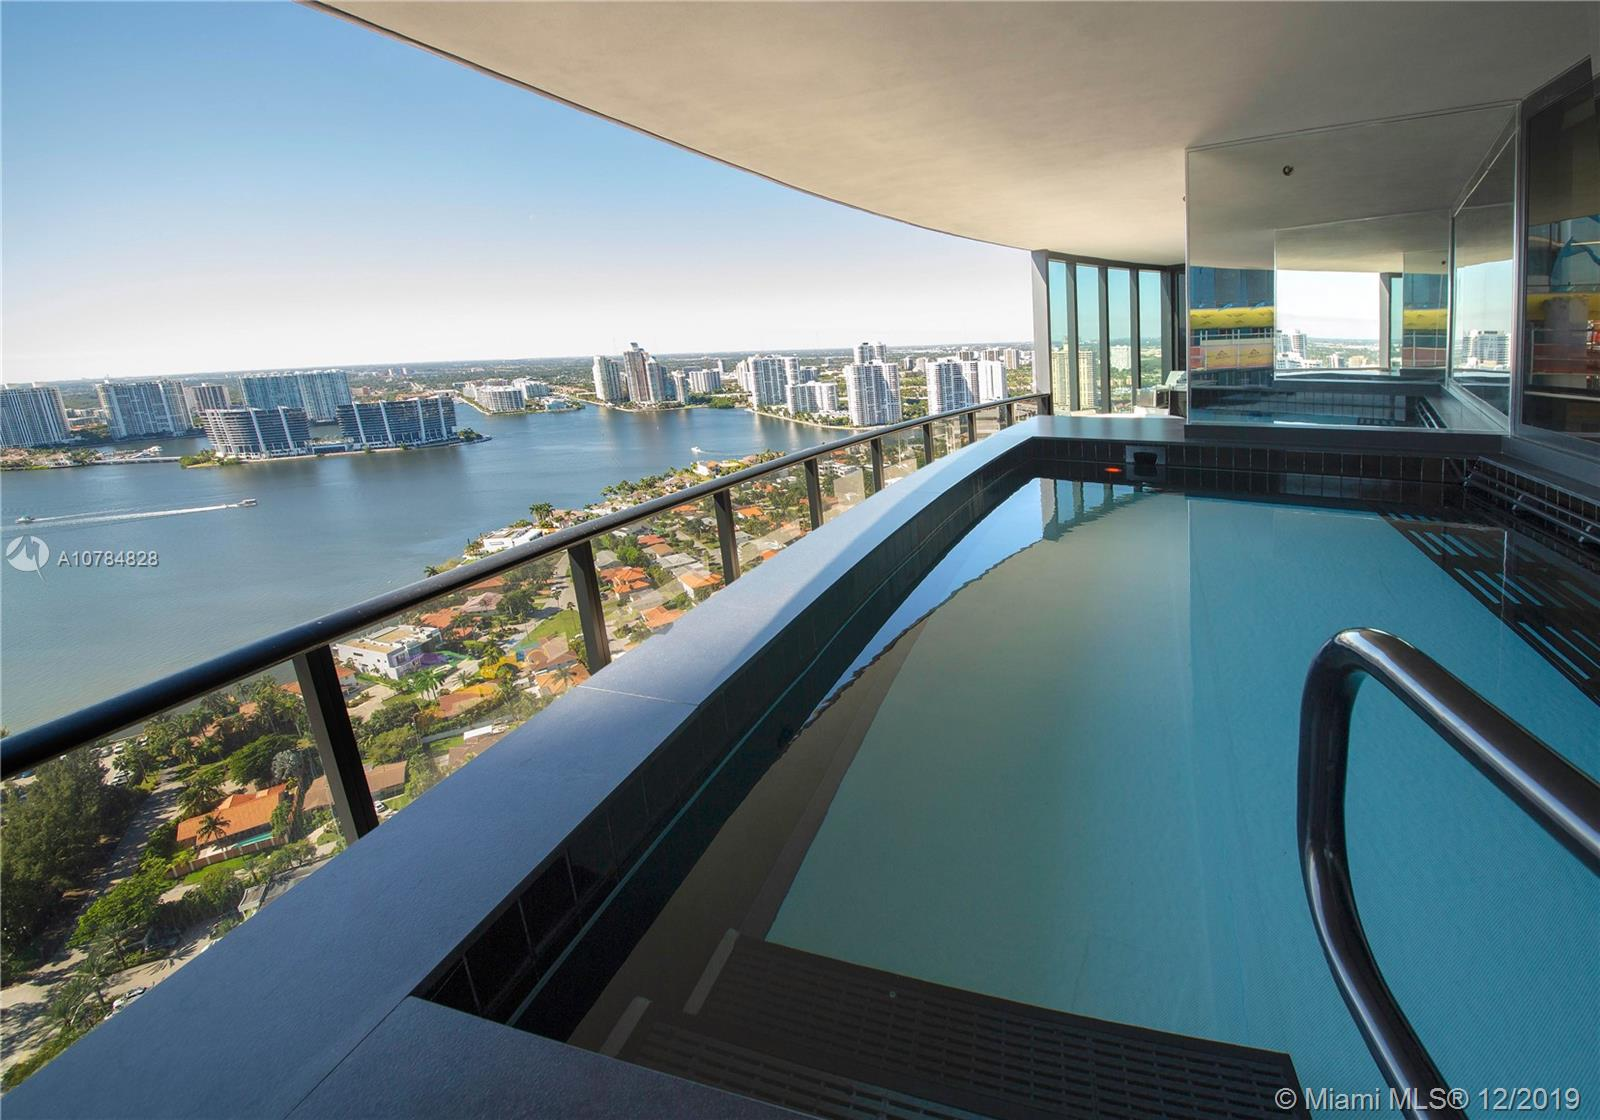 18555 Collins Ave, 3403 - Sunny Isles Beach, Florida